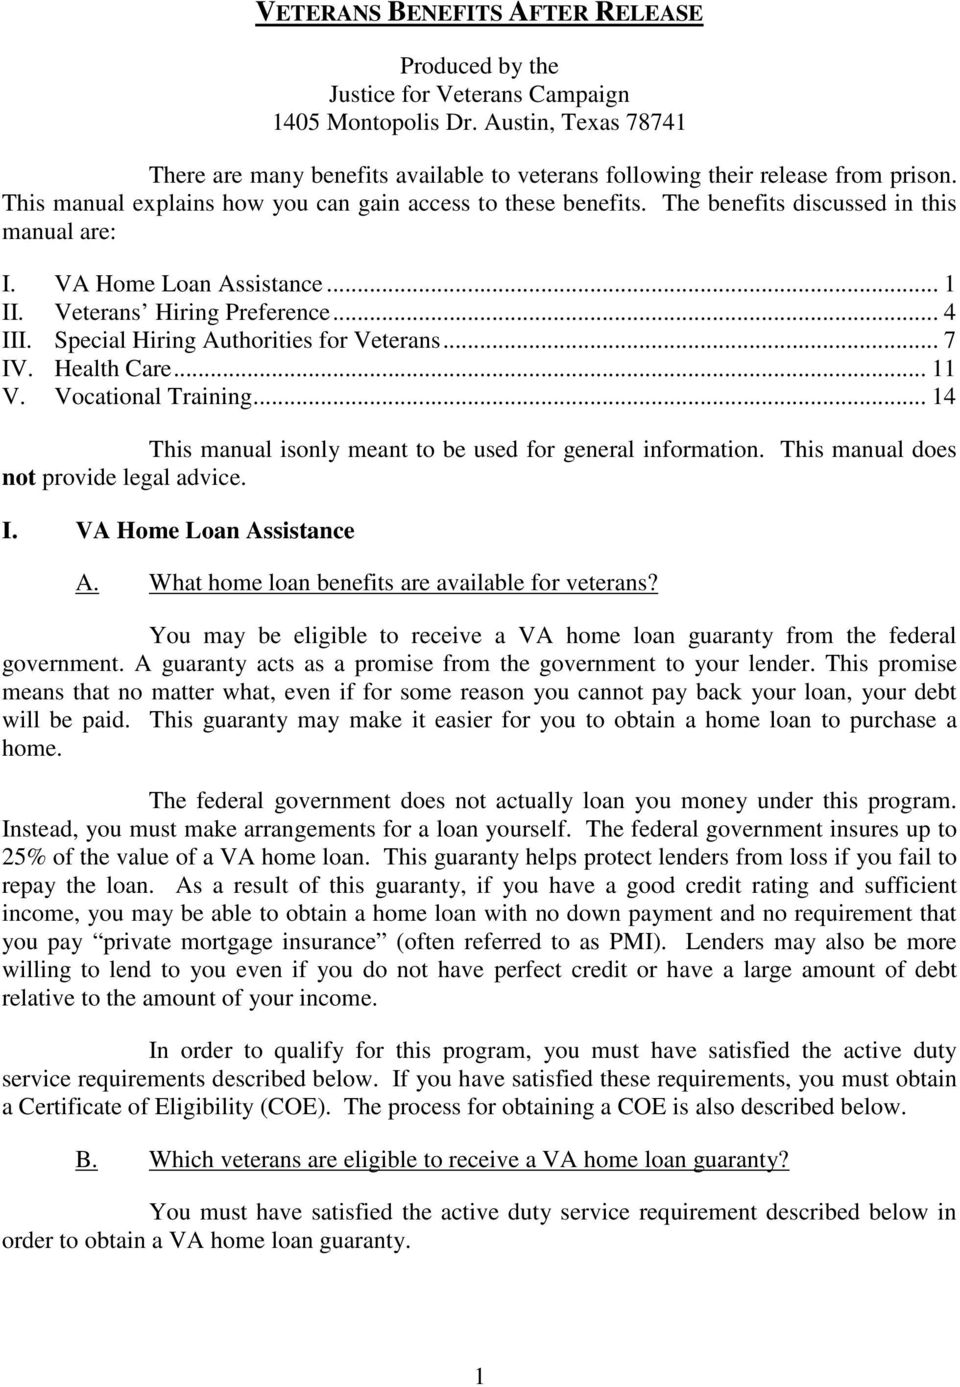 Special Hiring Authorities for Veterans... 7 IV. Health Care... 11 V. Vocational Training... 14 This manual isonly meant to be used for general information. This manual does not provide legal advice.